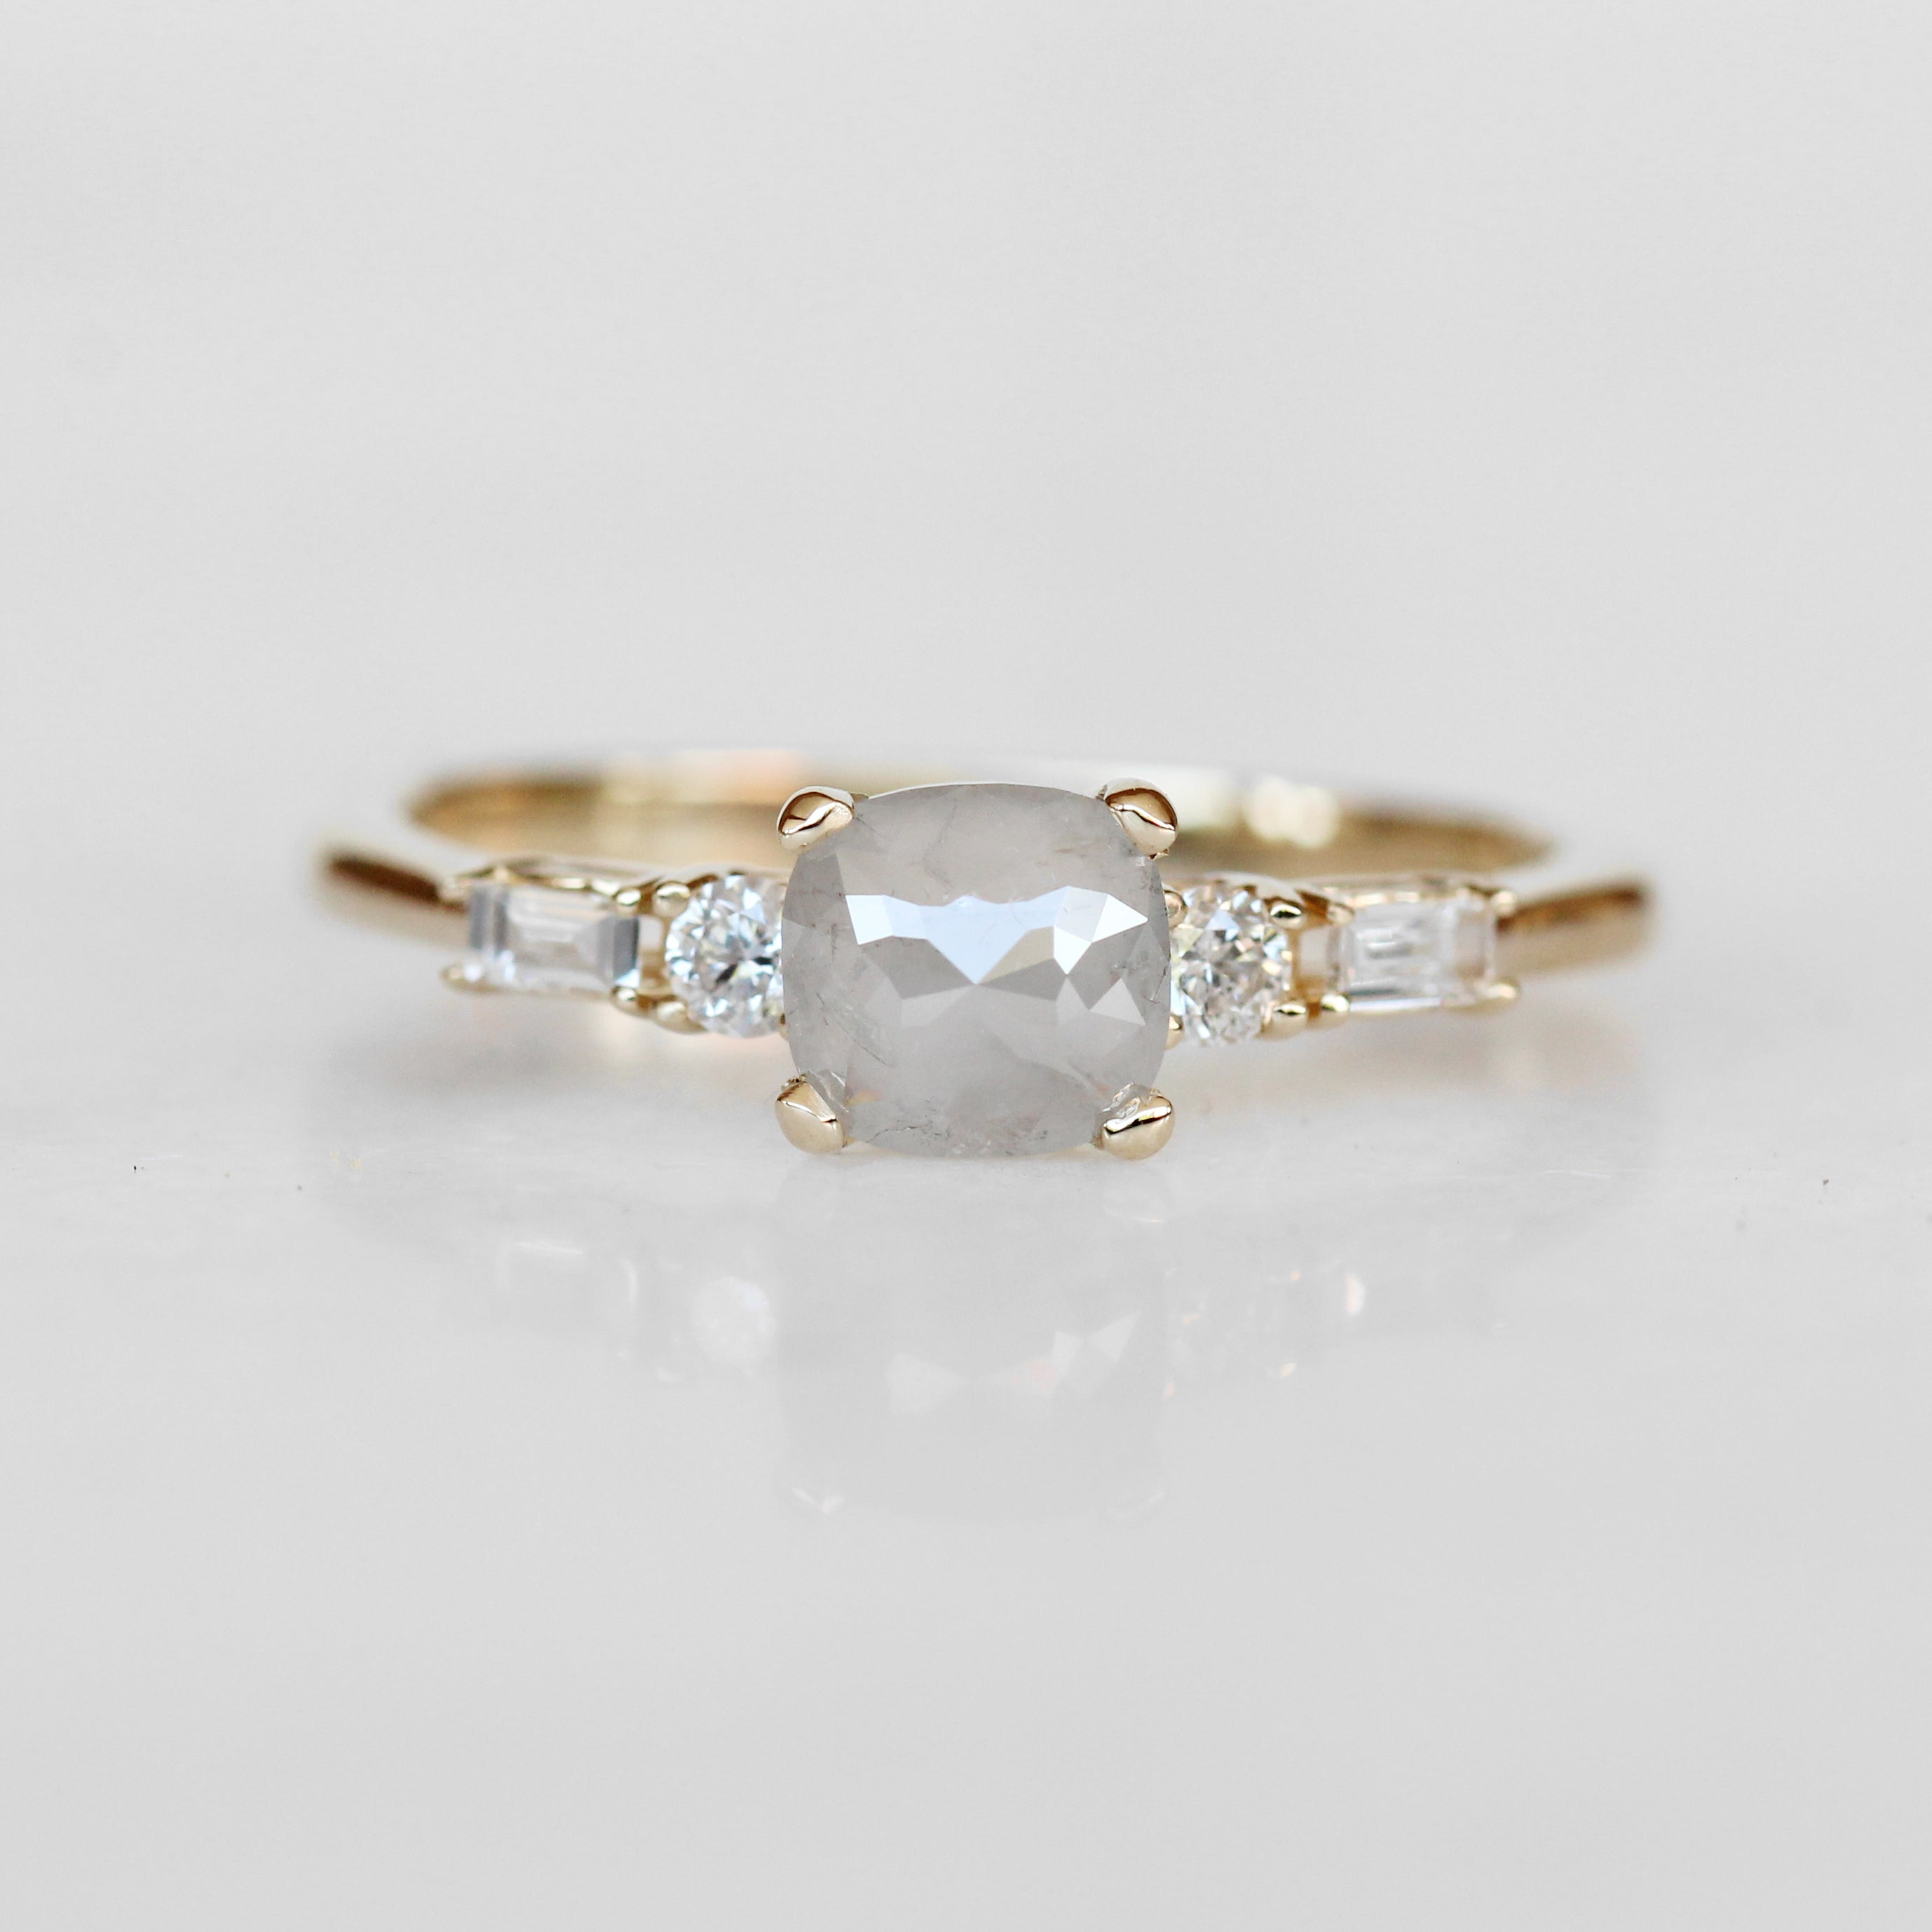 River Ring with a Celestial Diamond and Diamond Accents in 10k Yellow Gold - Ready to Size and Ship - Celestial Diamonds ® by Midwinter Co.